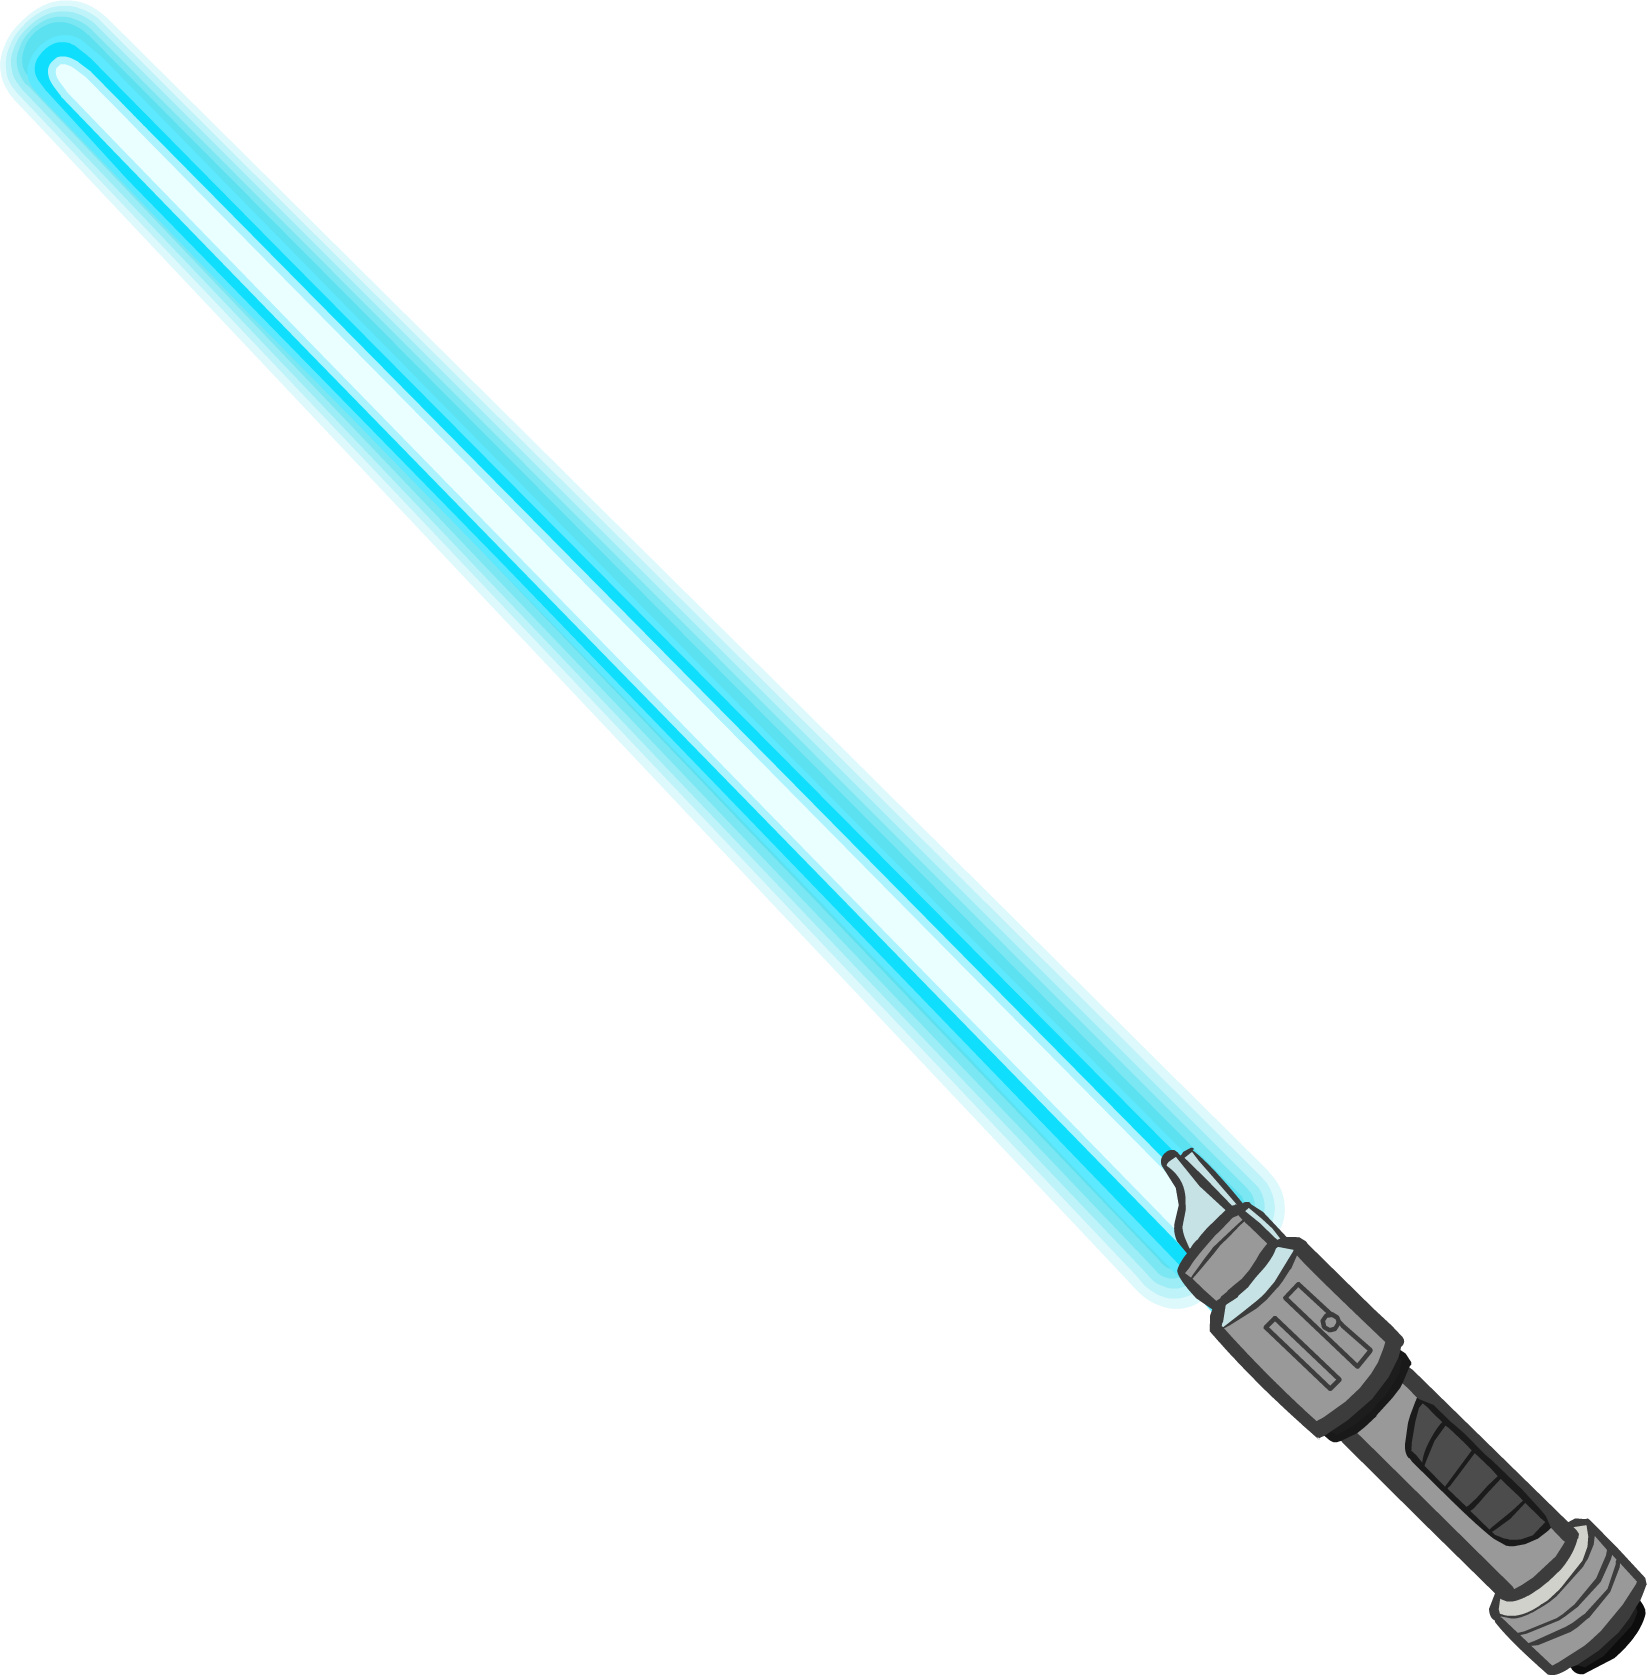 Lightsaber clipart blue. Star wars at getdrawings